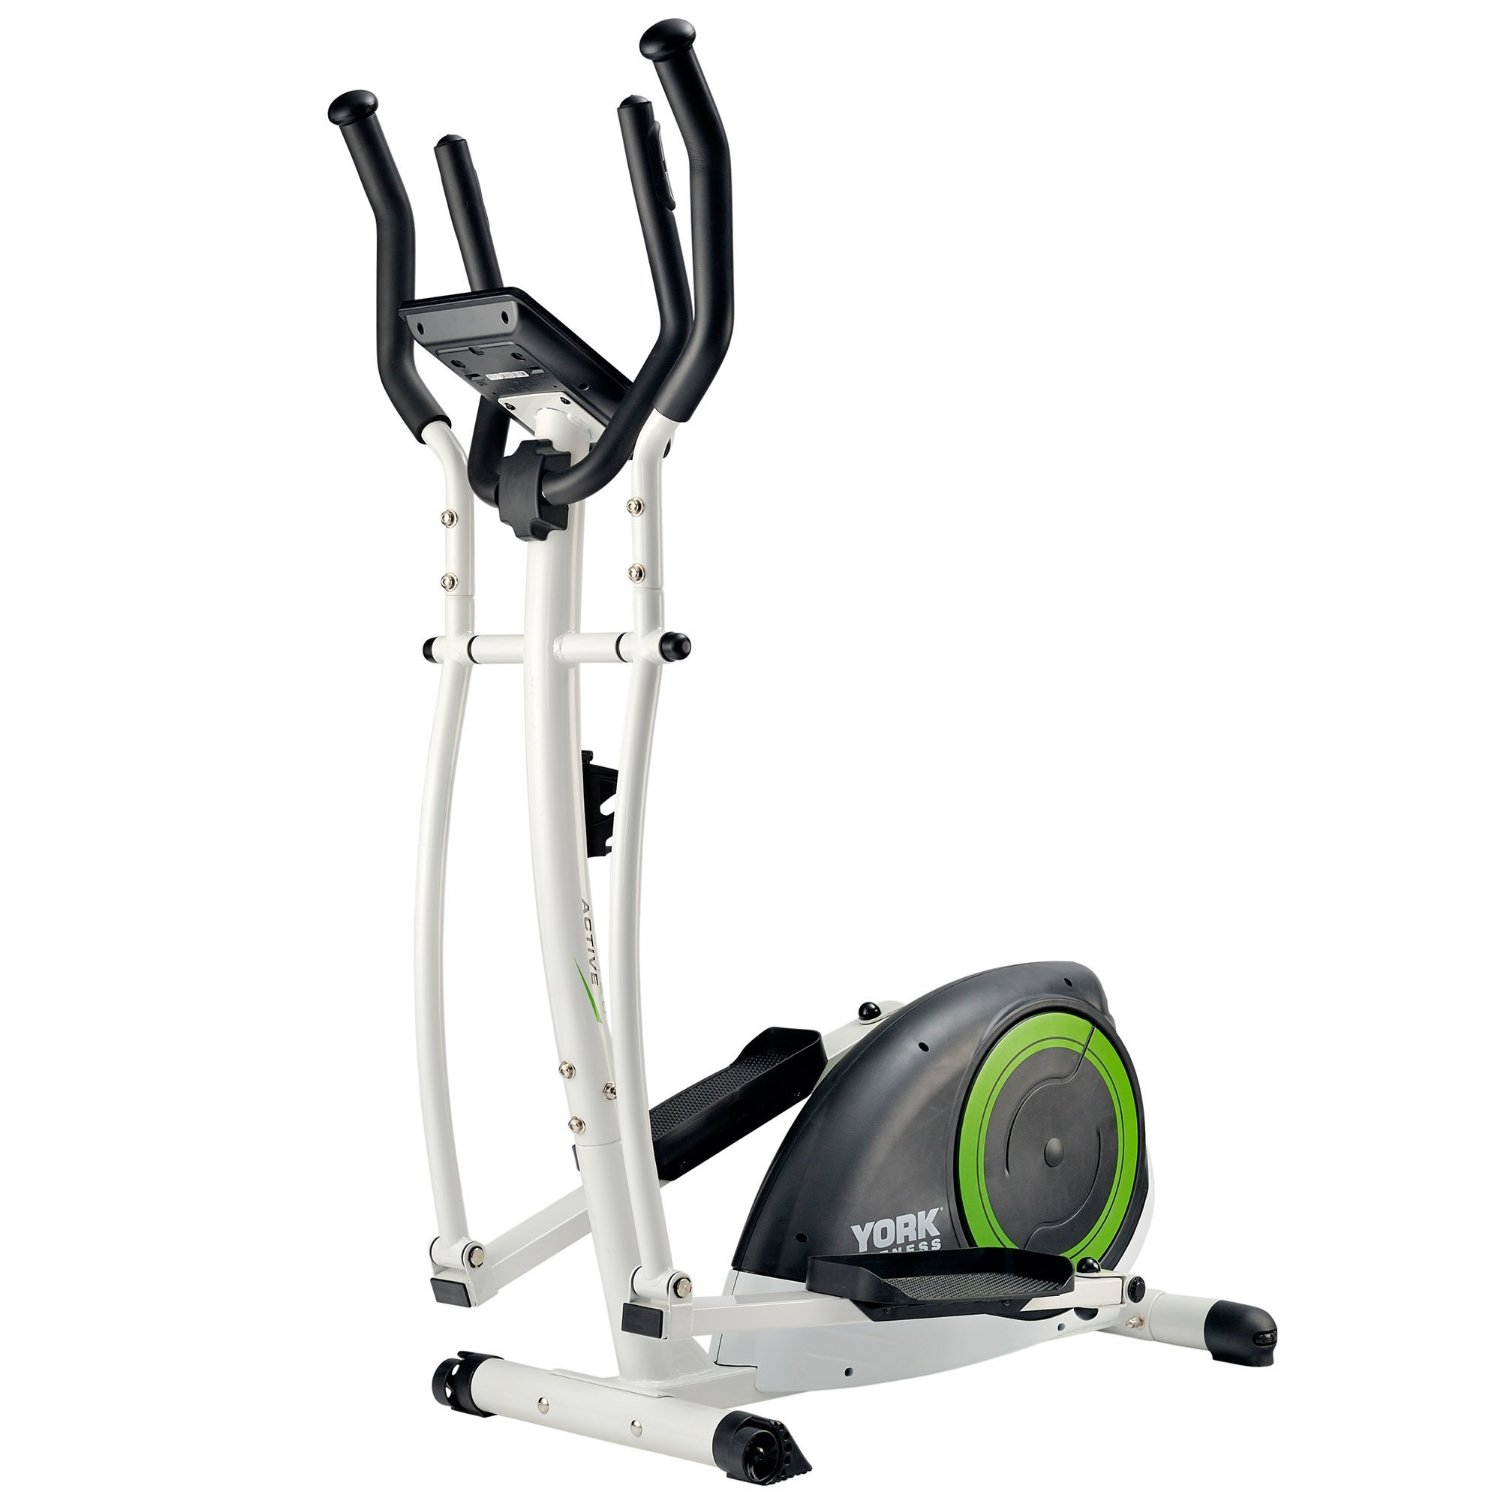 york-fitness-active-120-cross-trainer